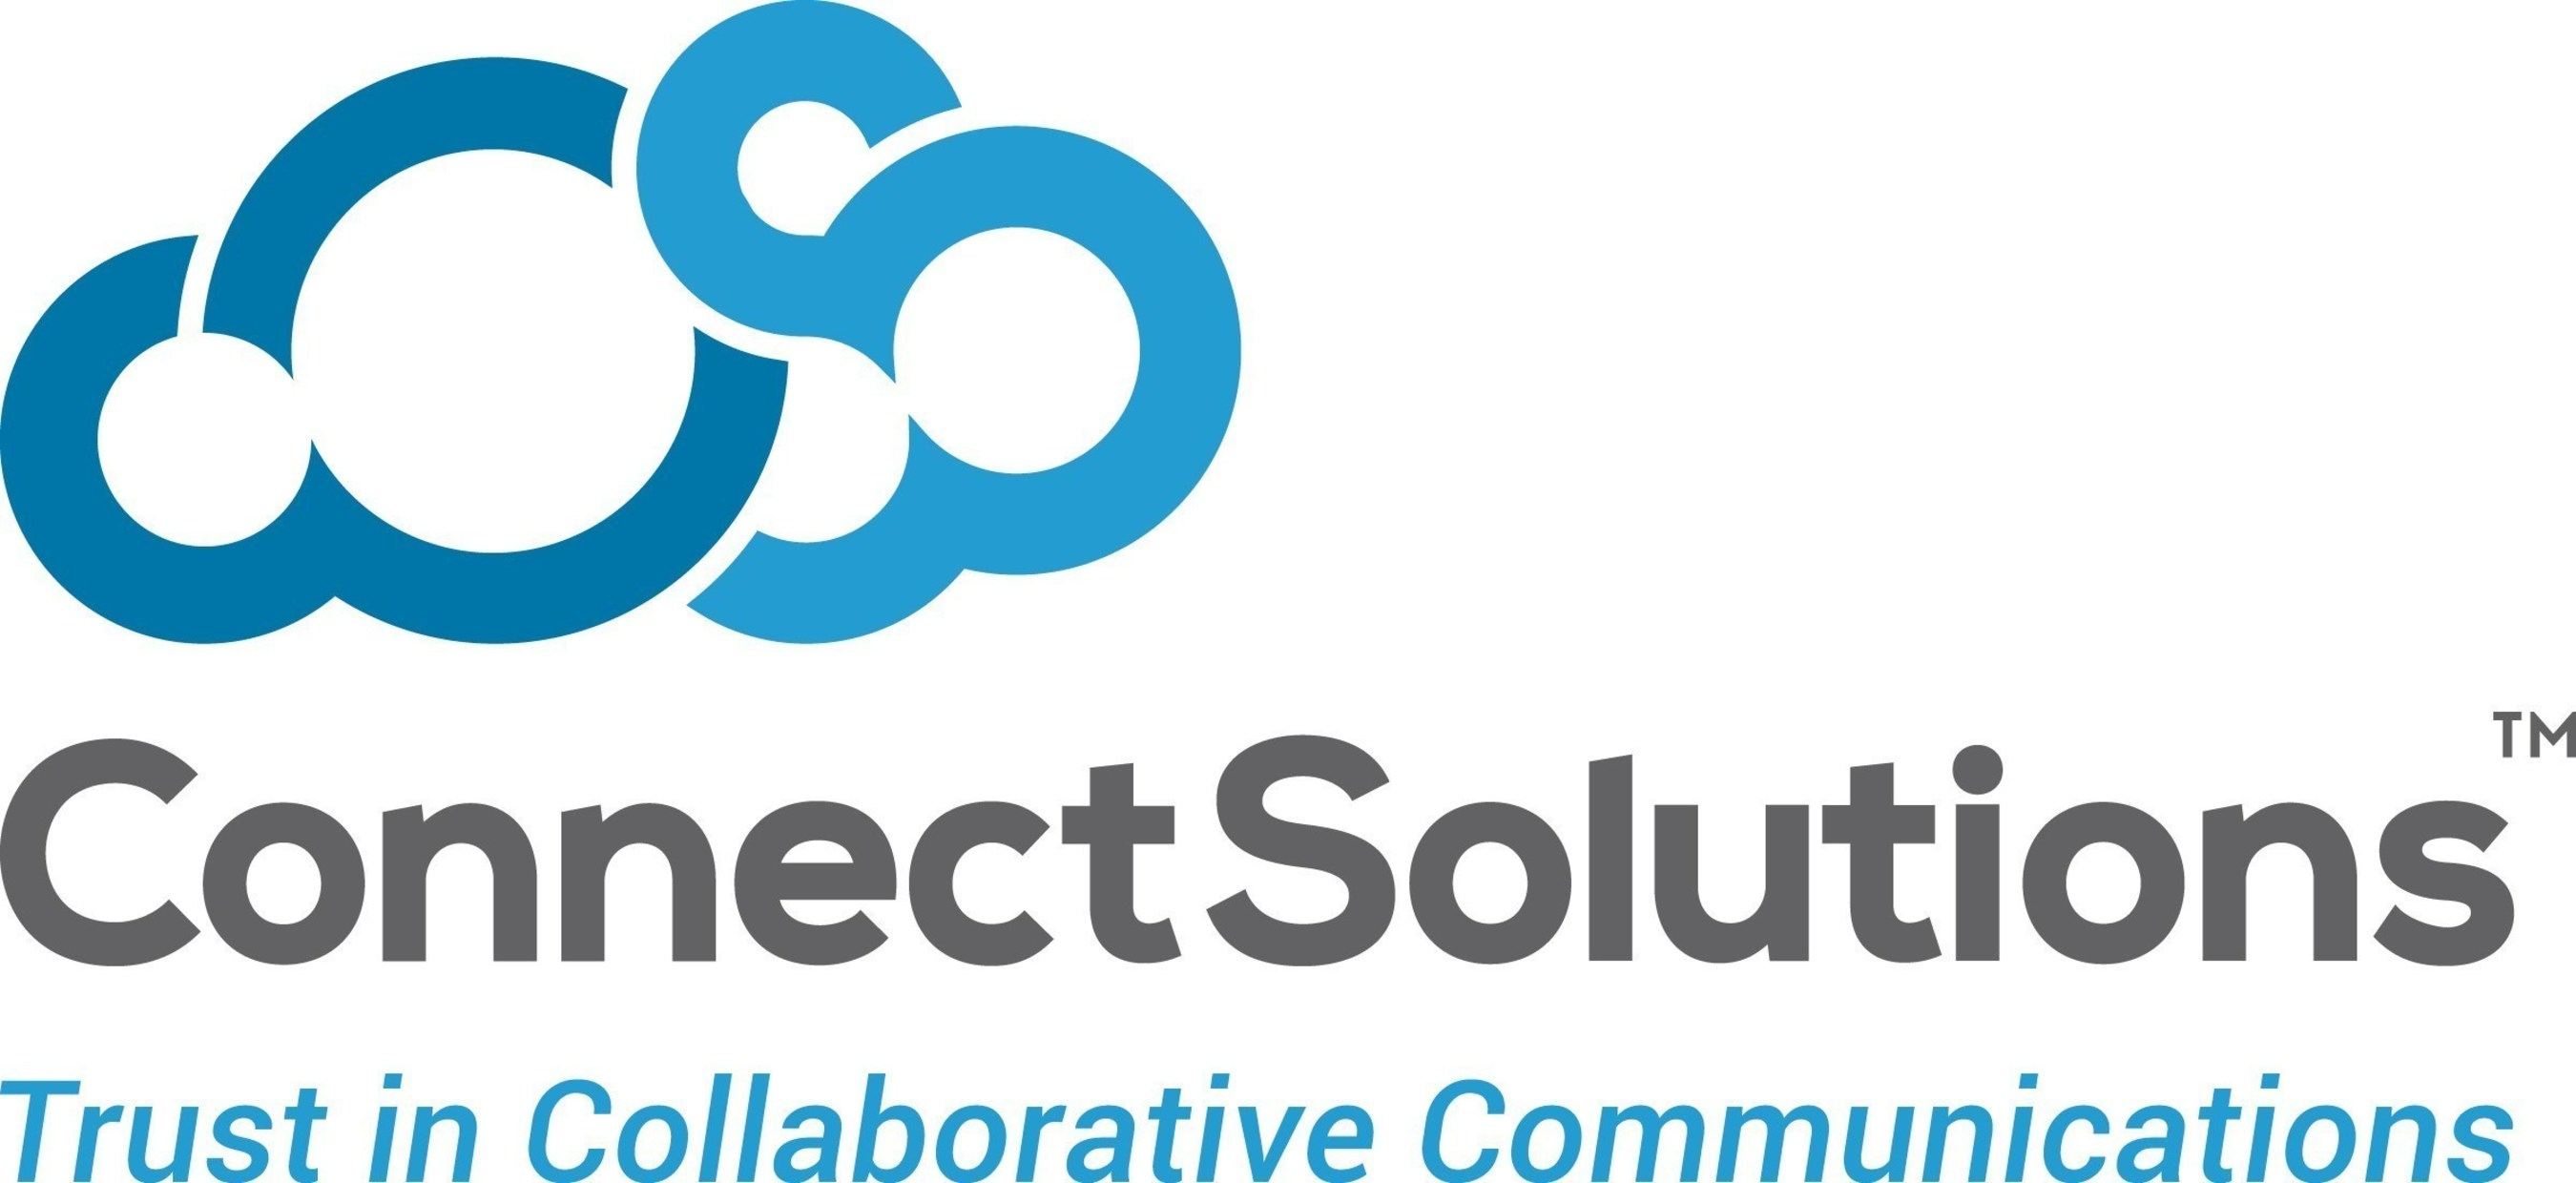 ConnectSolutions Webinar: Making the Right Choice - How to Succeed with Skype for Your Business